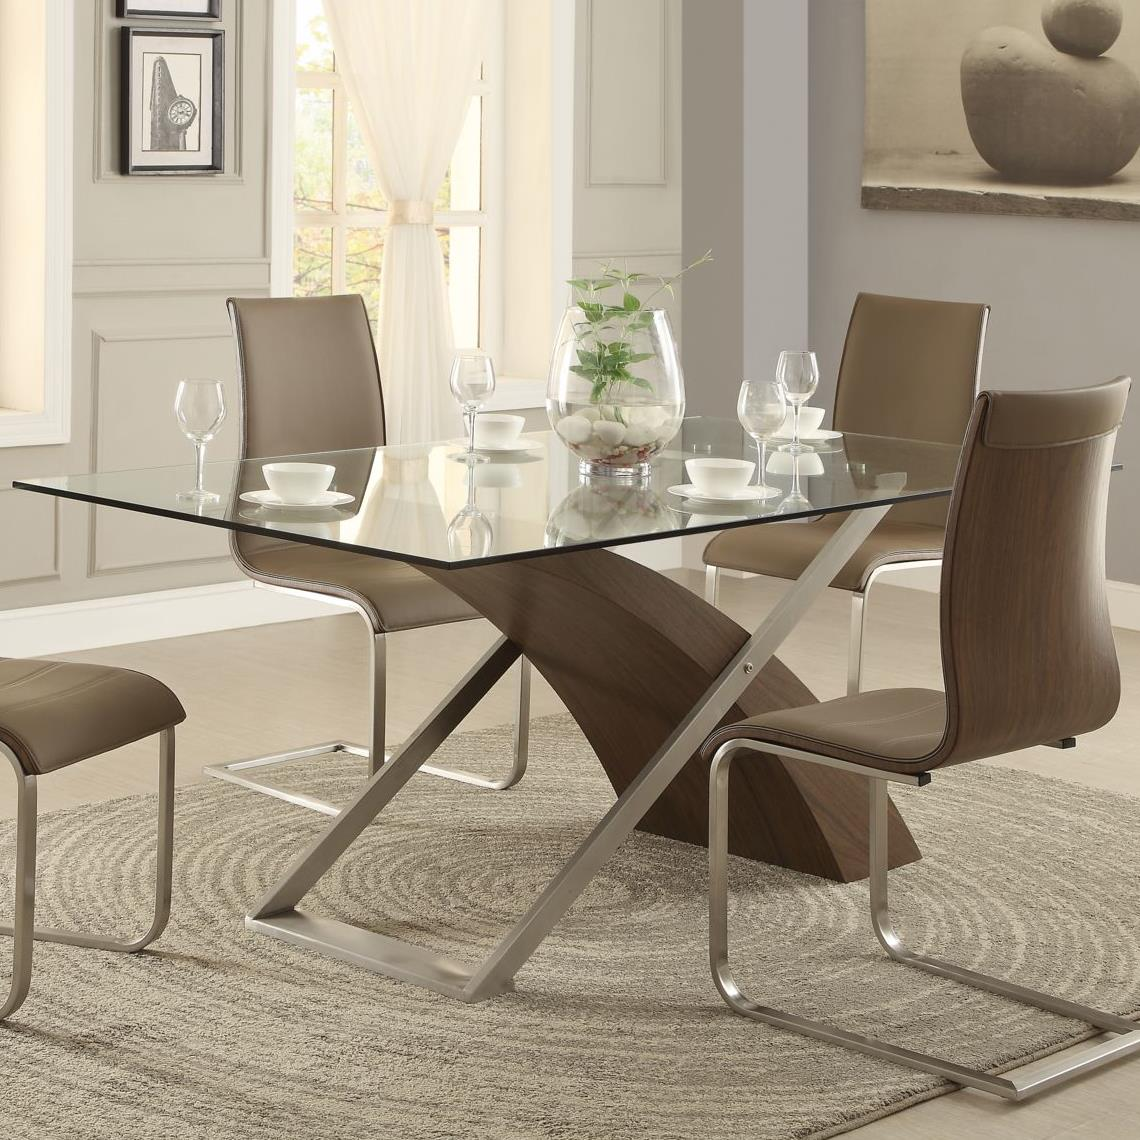 Homelegance Odeon Dining Table - Item Number: 5261G+WB+MB